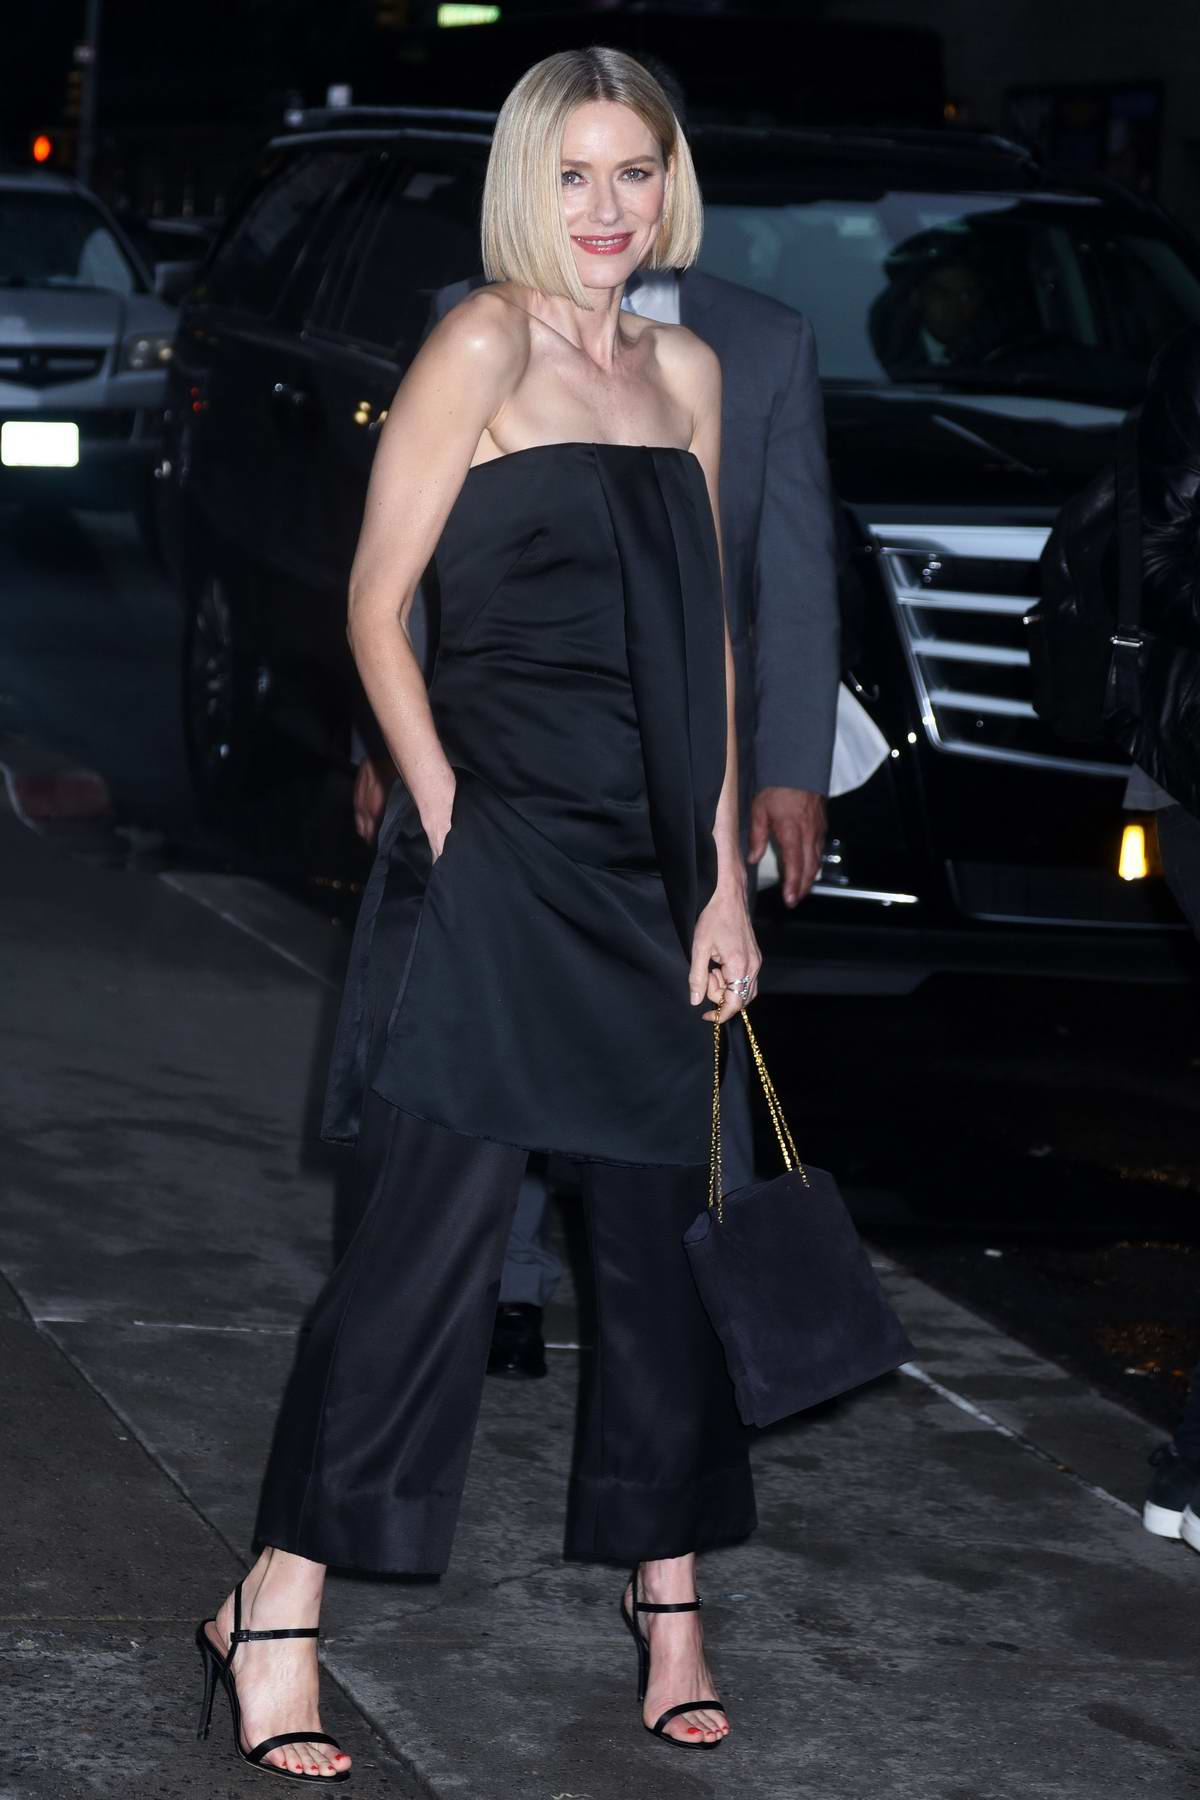 Naomi Watts looks classy in all-black ensemble while visiting 'The Late Show With Stephen Colbert' in New York City